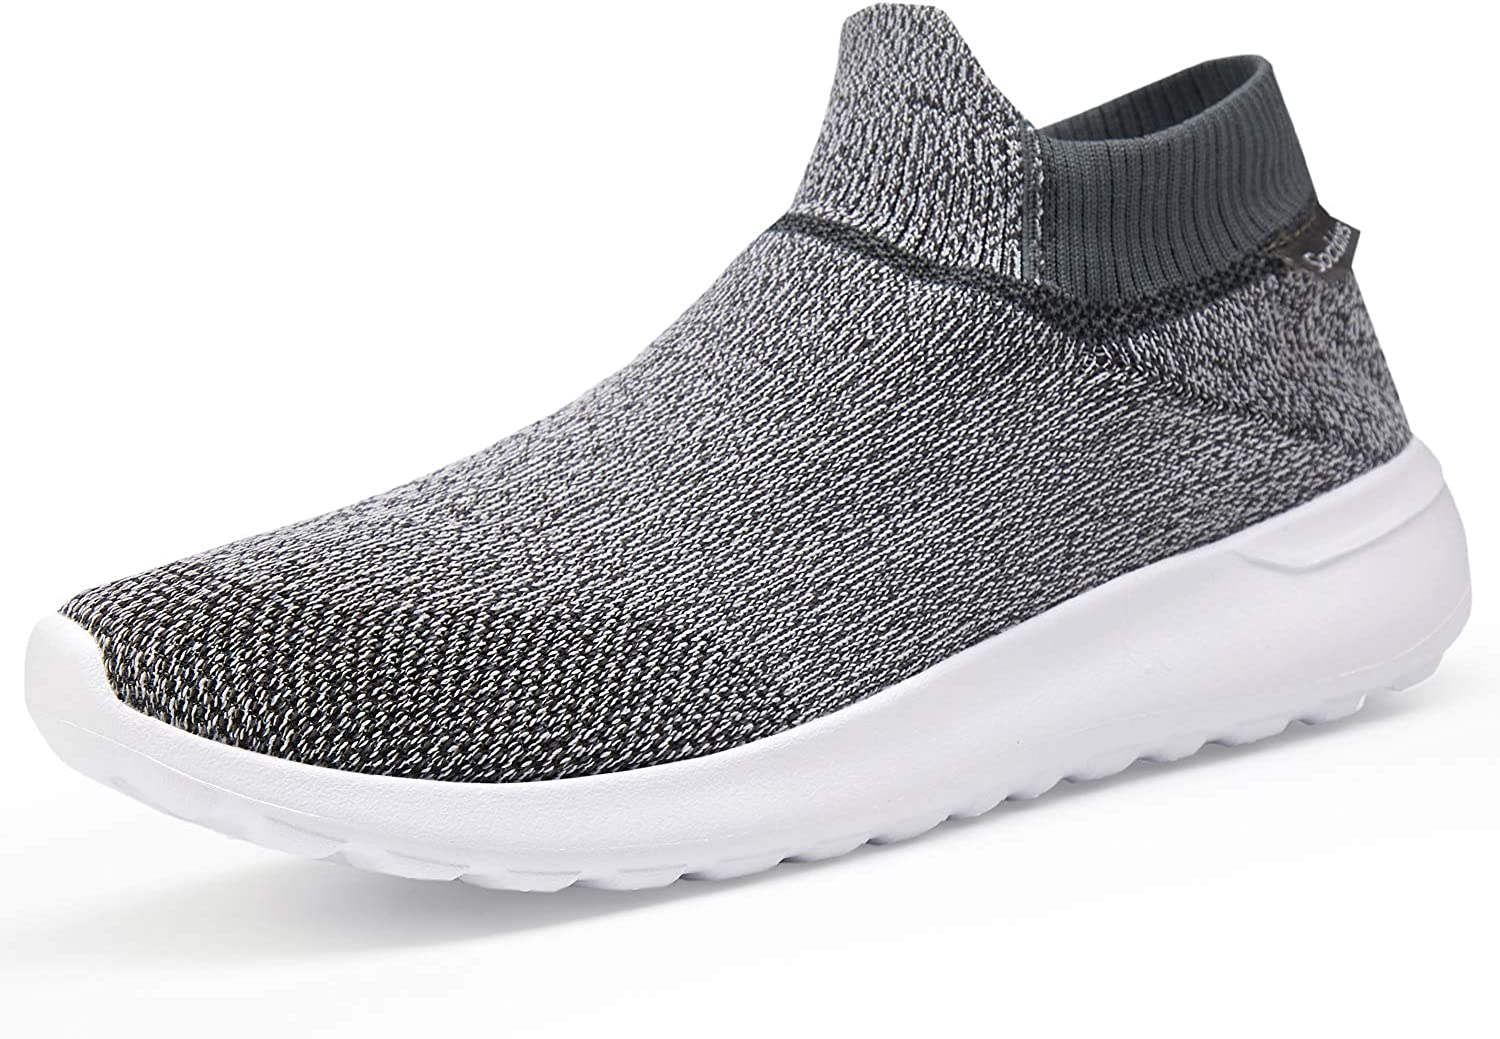 VIFUUR Men s Lightweight Casual Walking Athletic Shoes Breathable Running Slip-on Sneakers Socks Shoes